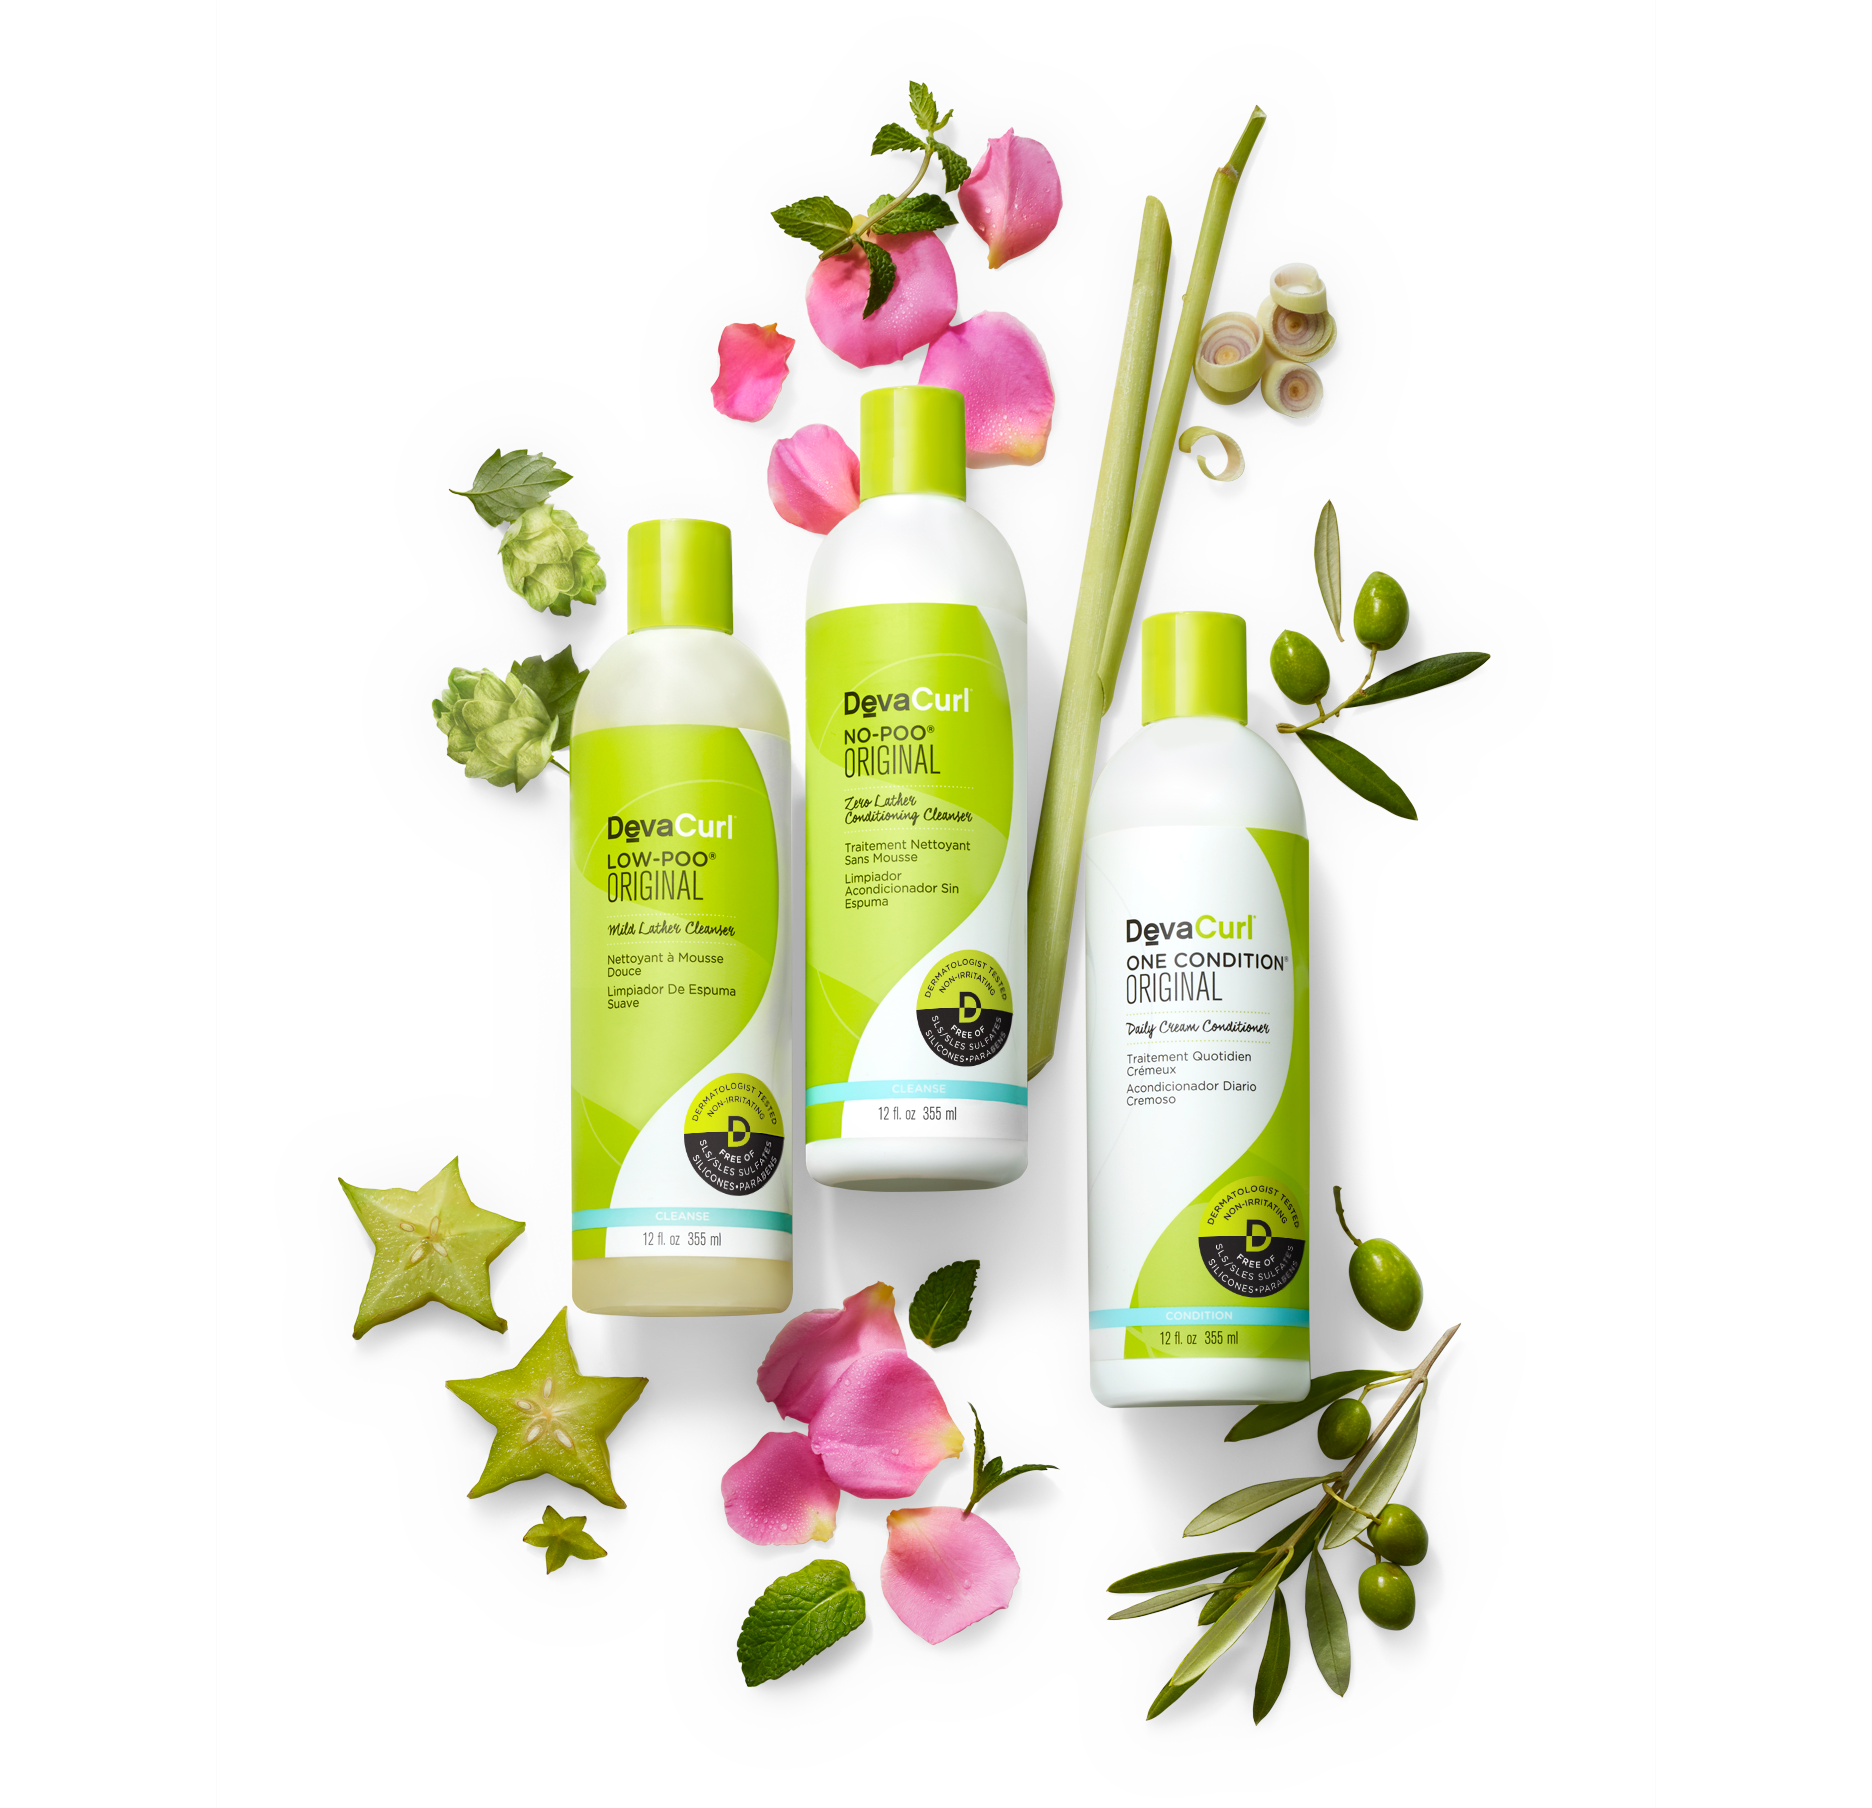 DevaCurl Original cleansers and conditioner bottles with botanicals